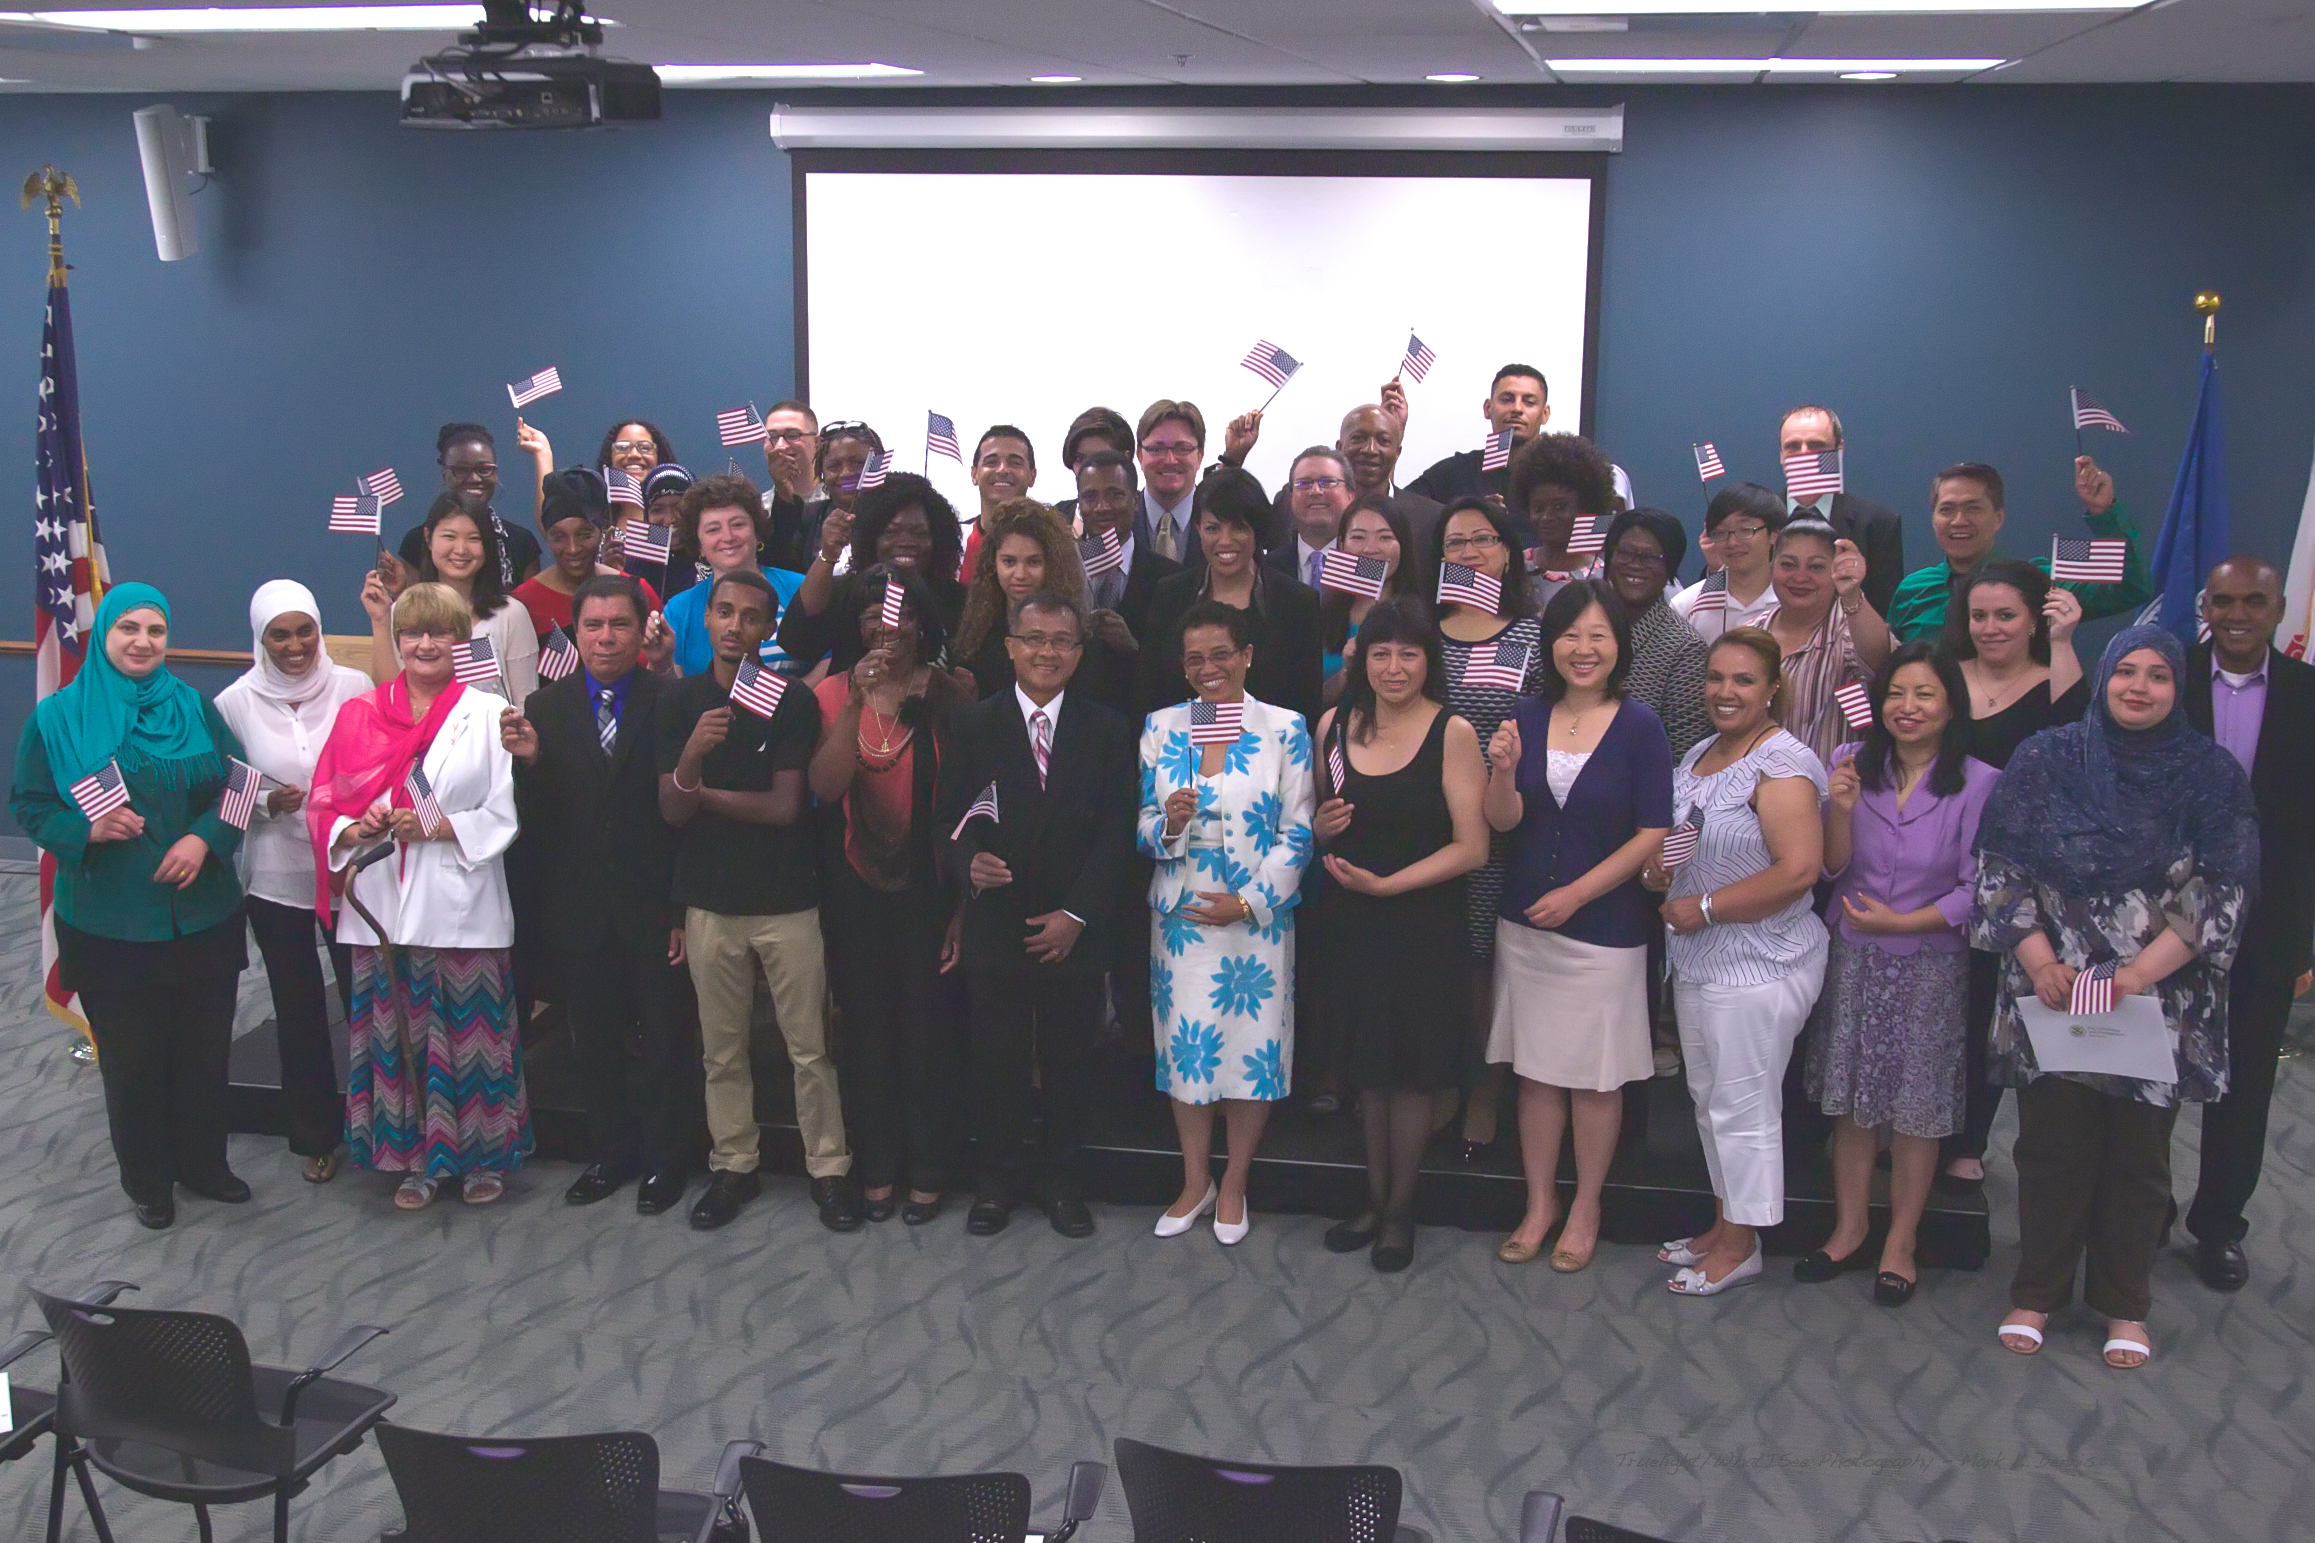 The City of Baltimore hosts a naturalization ceremony with former Mayor Stephanie Rawlings-Blake in 2015